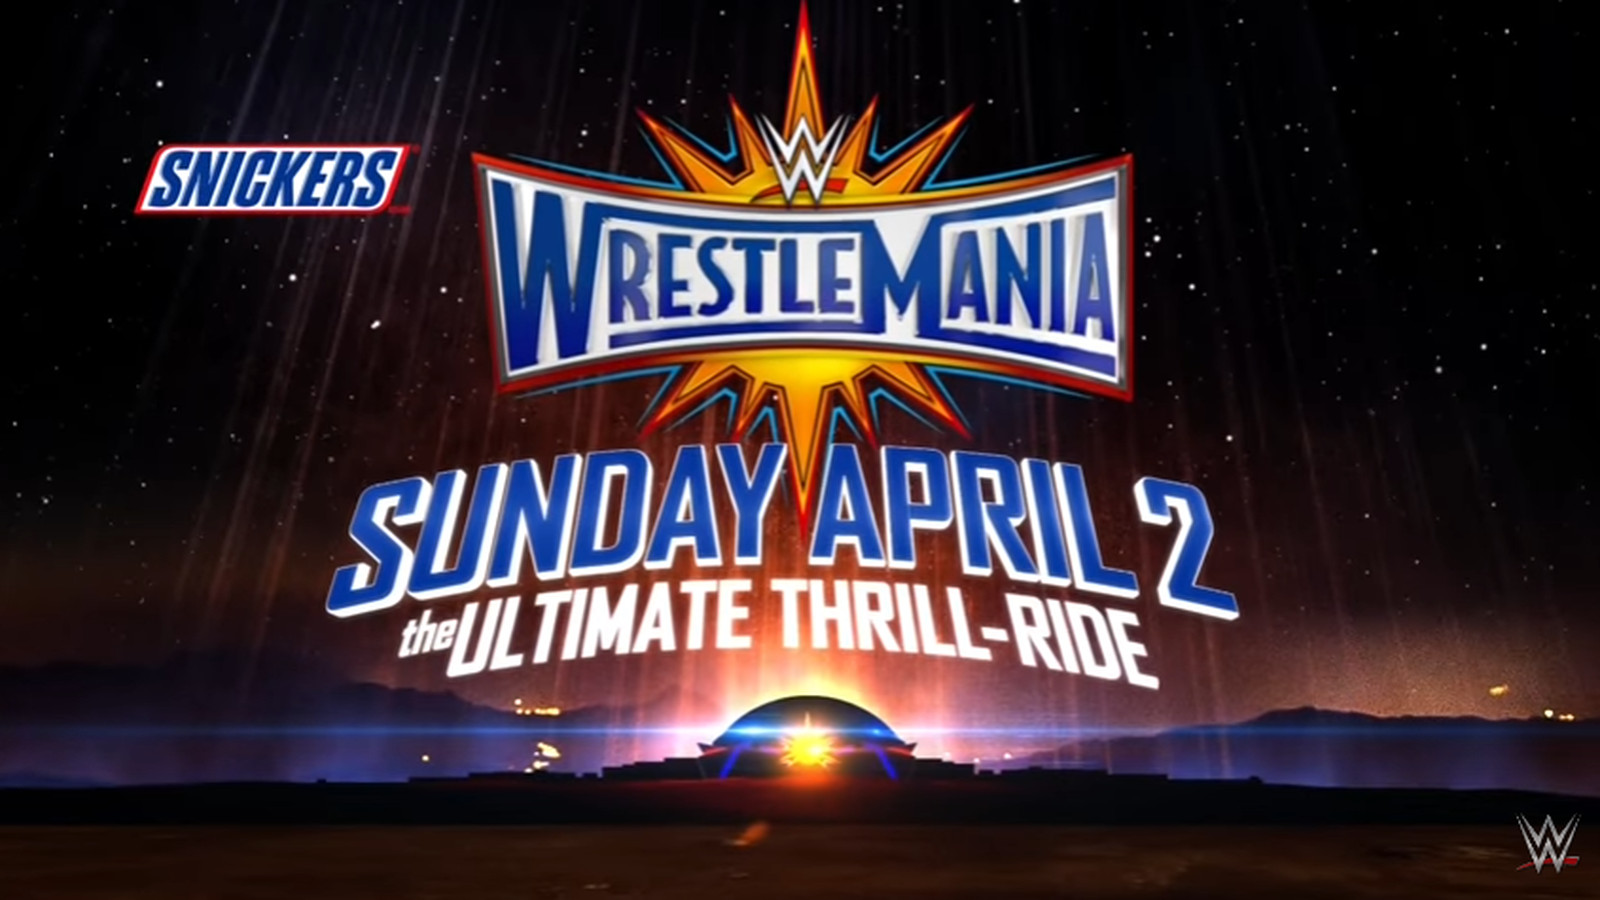 WWE WrestleMania 33 full match previews: Featuring Brock Lesnar vs. Goldberg, Undertaker vs. Roman Reigns, Shane McMahon vs. AJ Styles, and more!